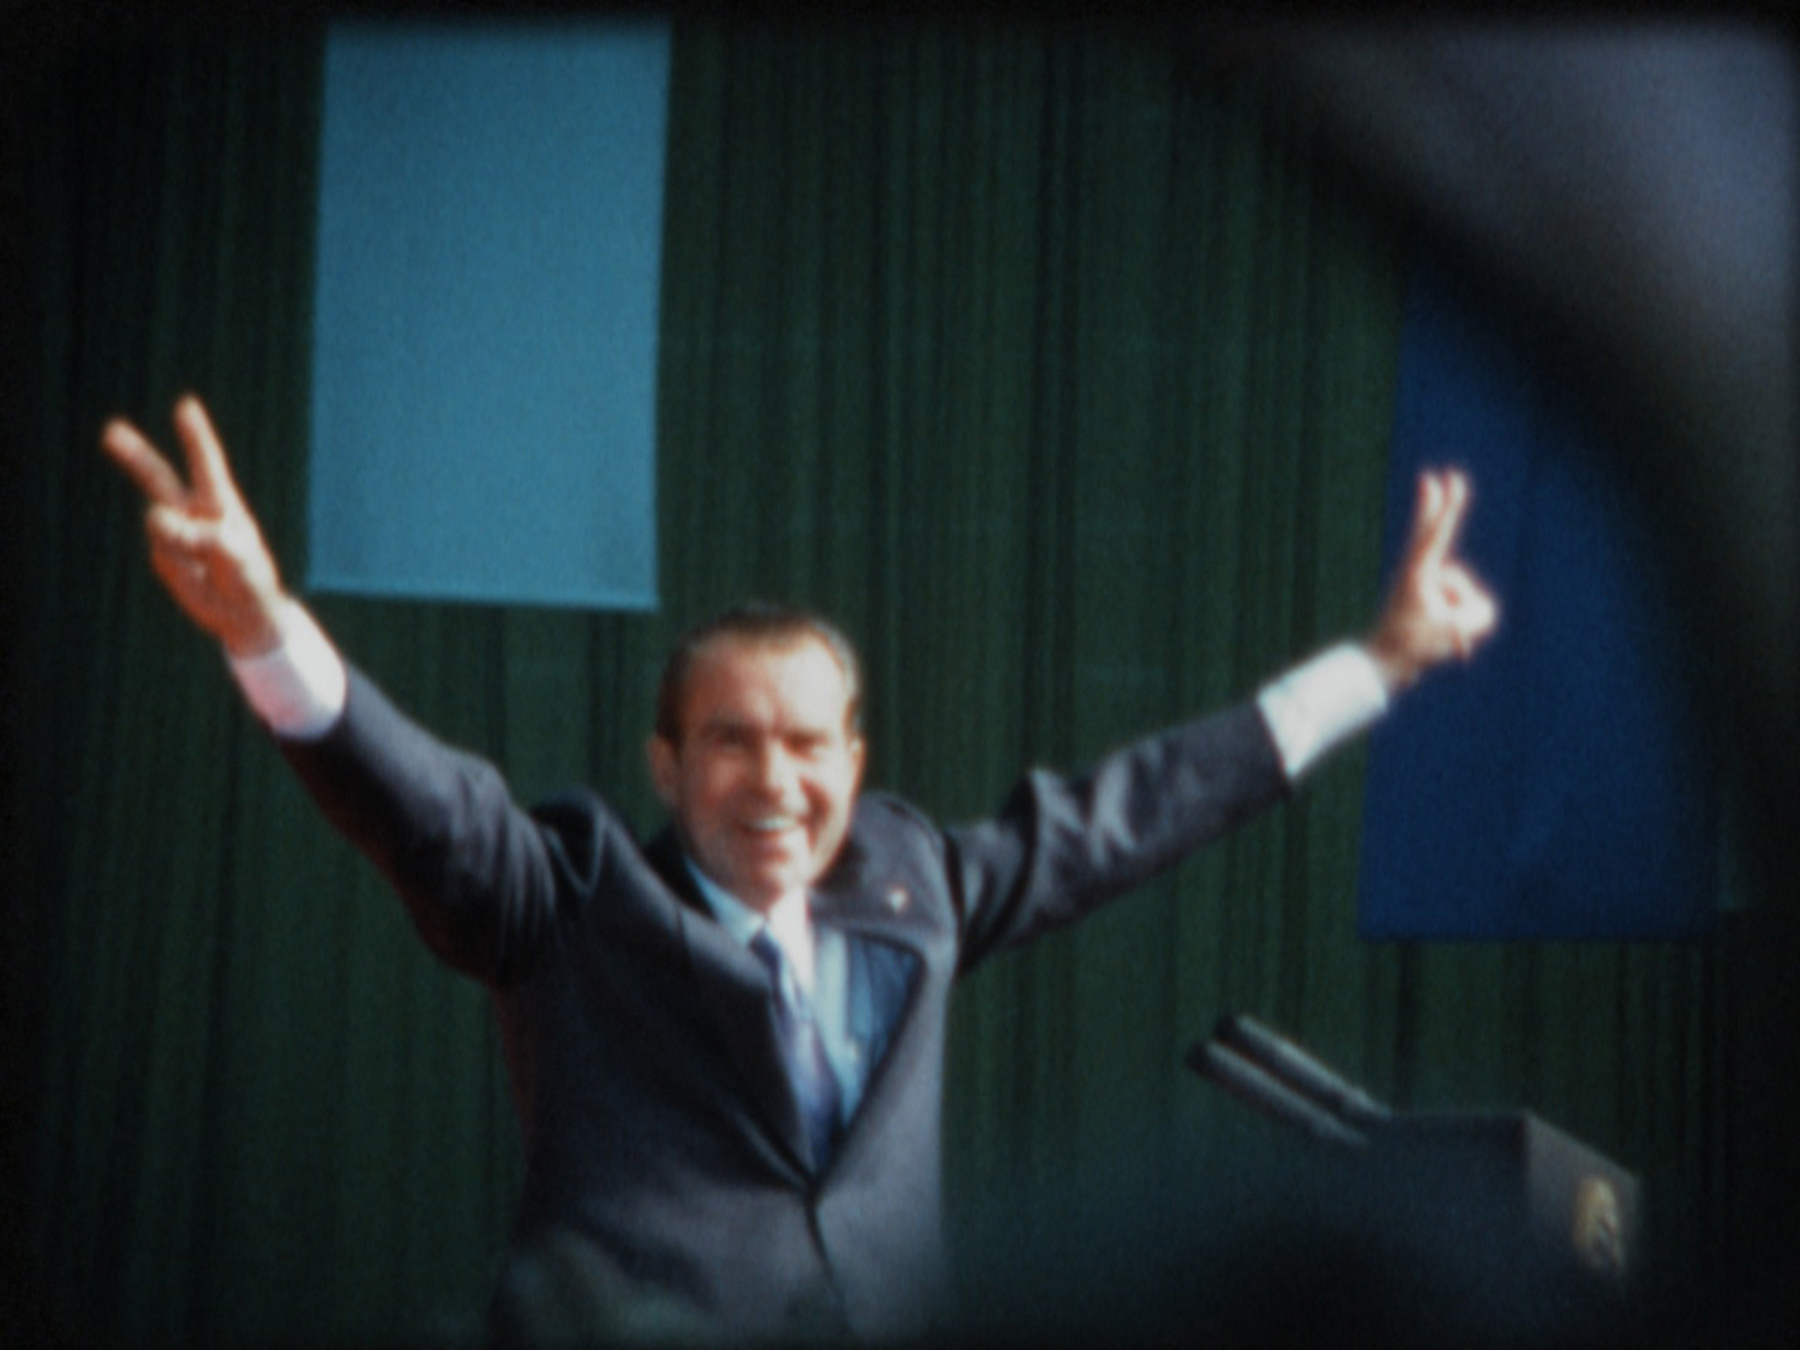 OUR NIXON airs Saturday, July 1 on CNN; Streams via CNNgo Beginning Sunday, July 2